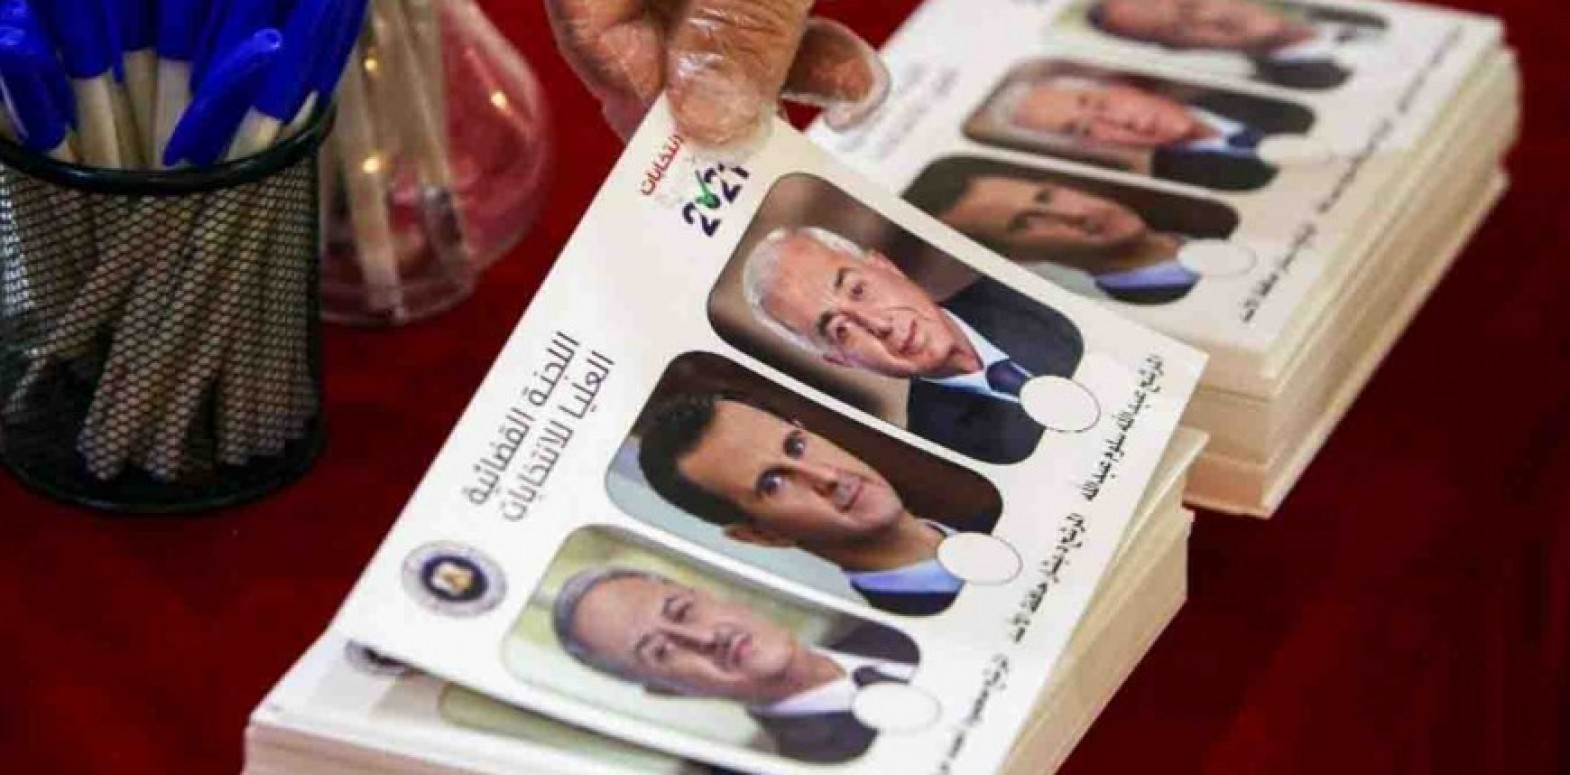 """Verify-Sy investigation reveals some of the misinformation and fraud in the """"Syrian presidential elections"""""""